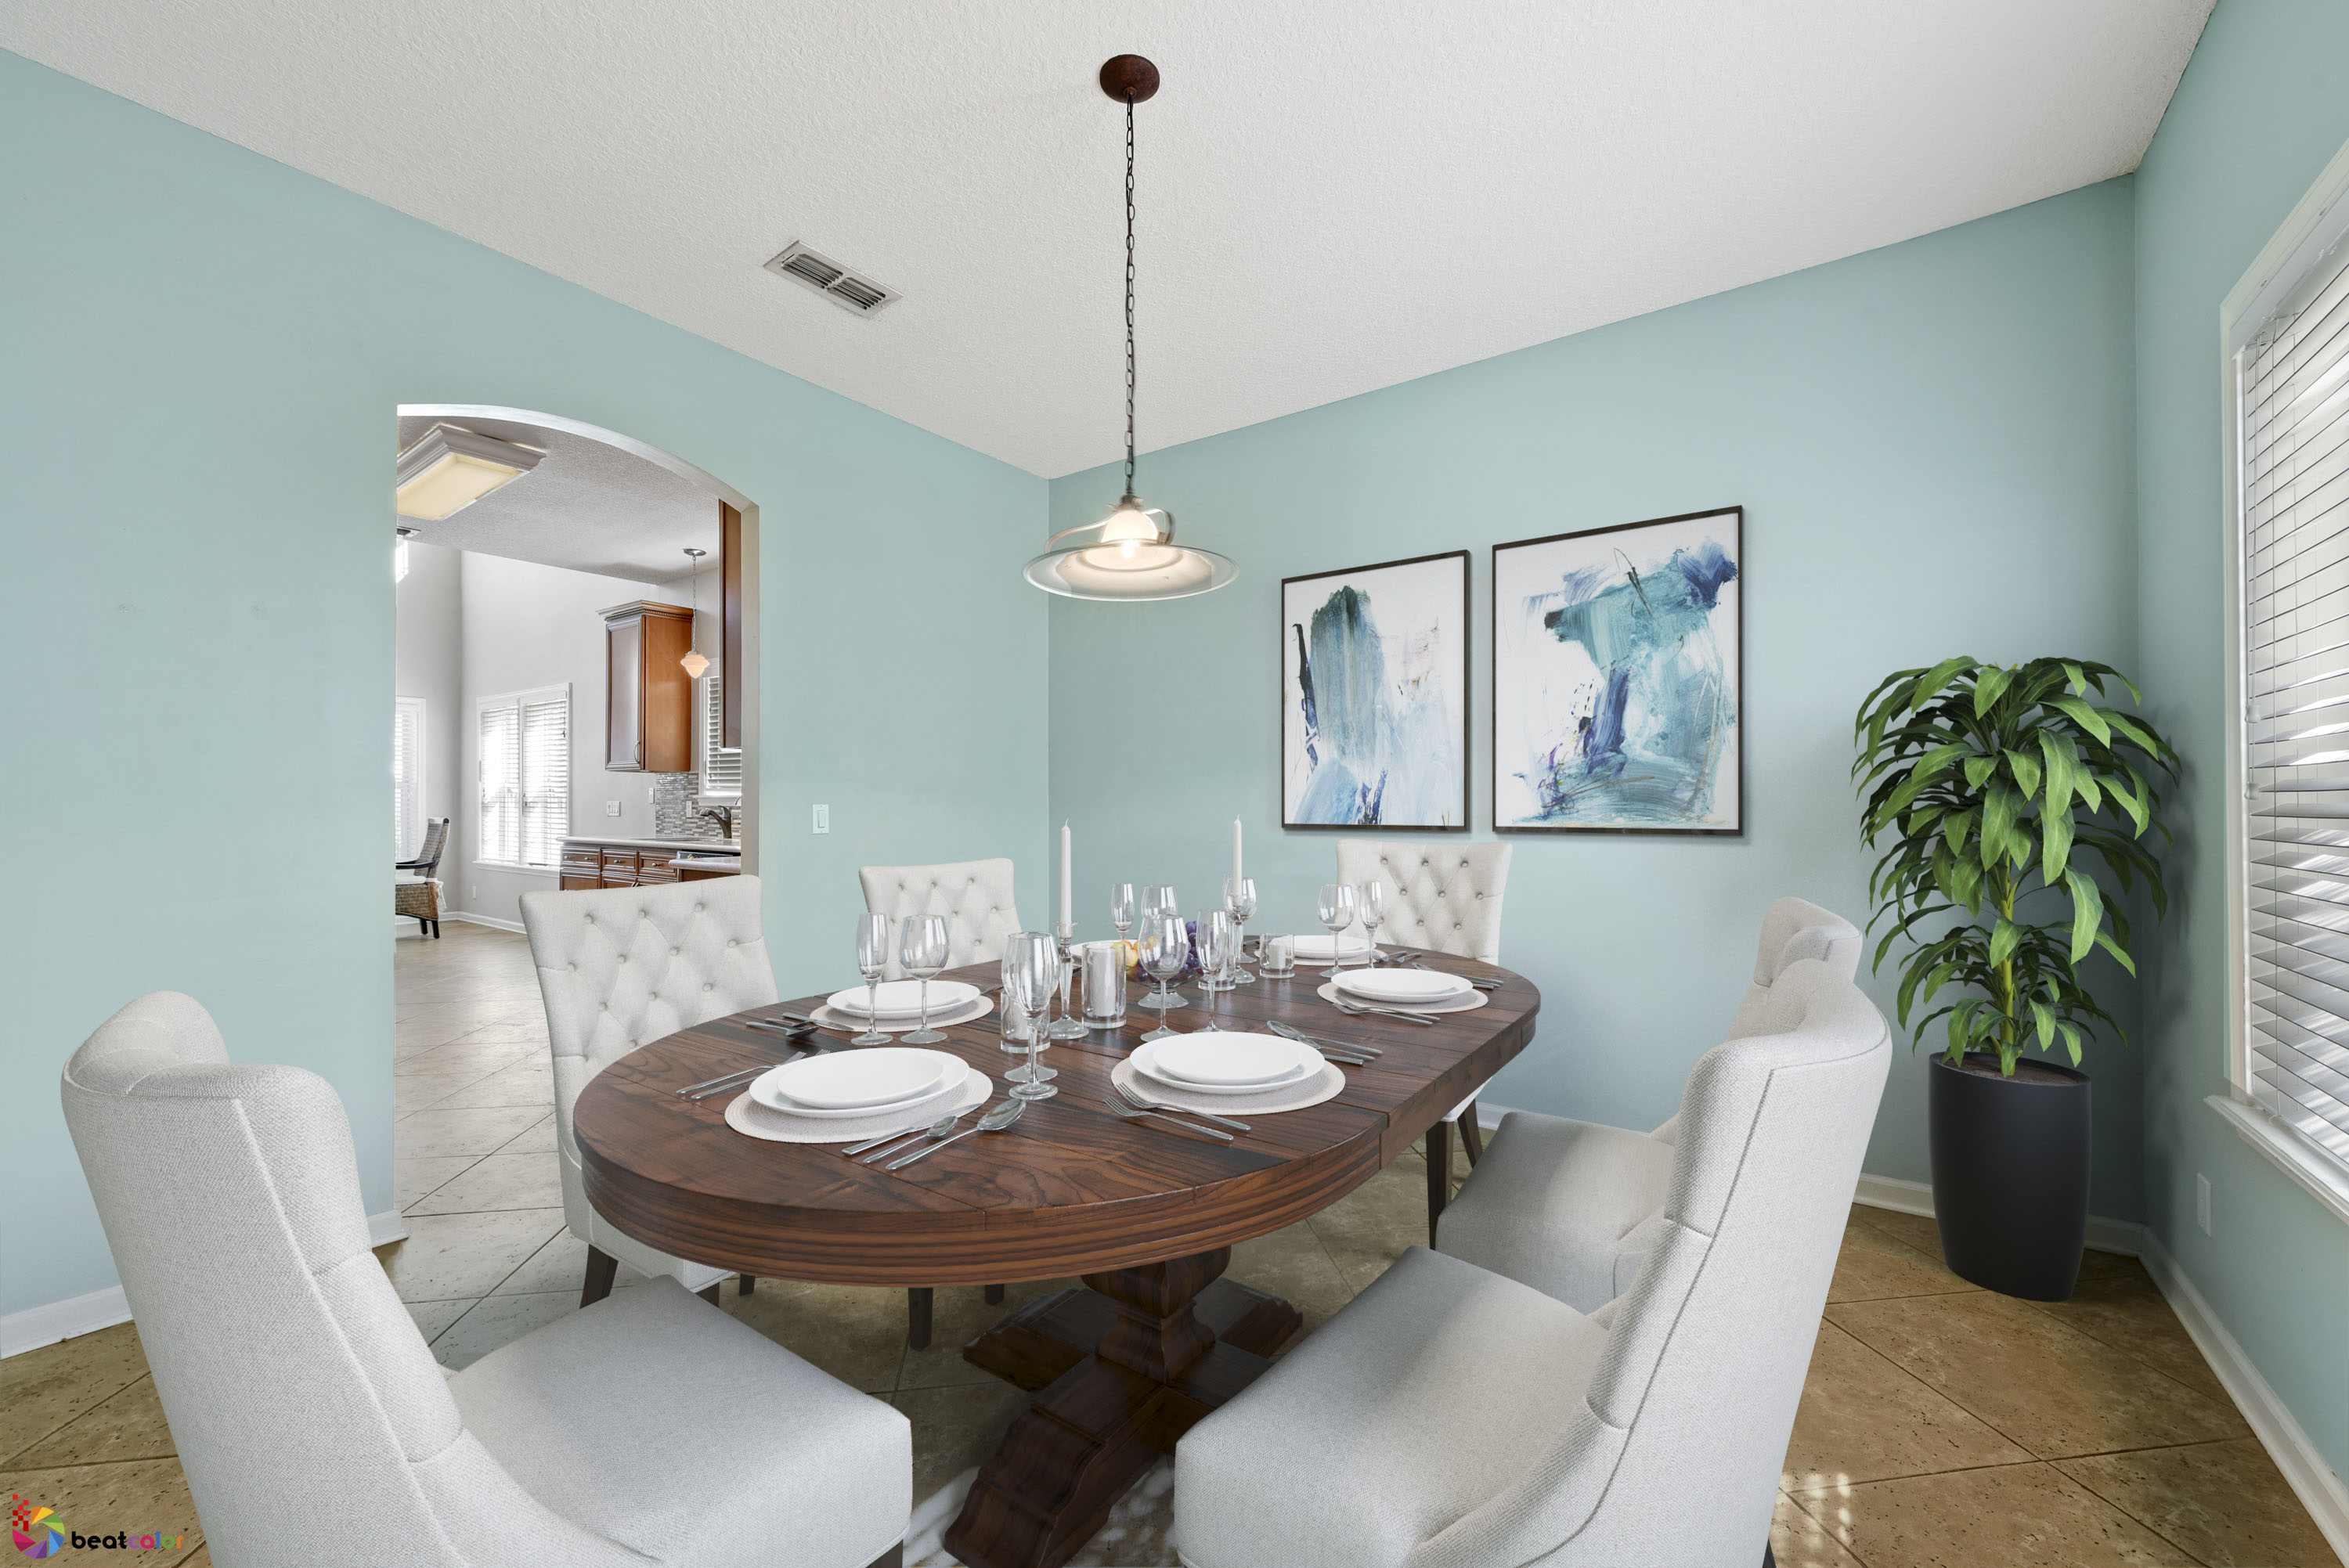 Typical Rules in Staging a Dining Room for a Home to Sale